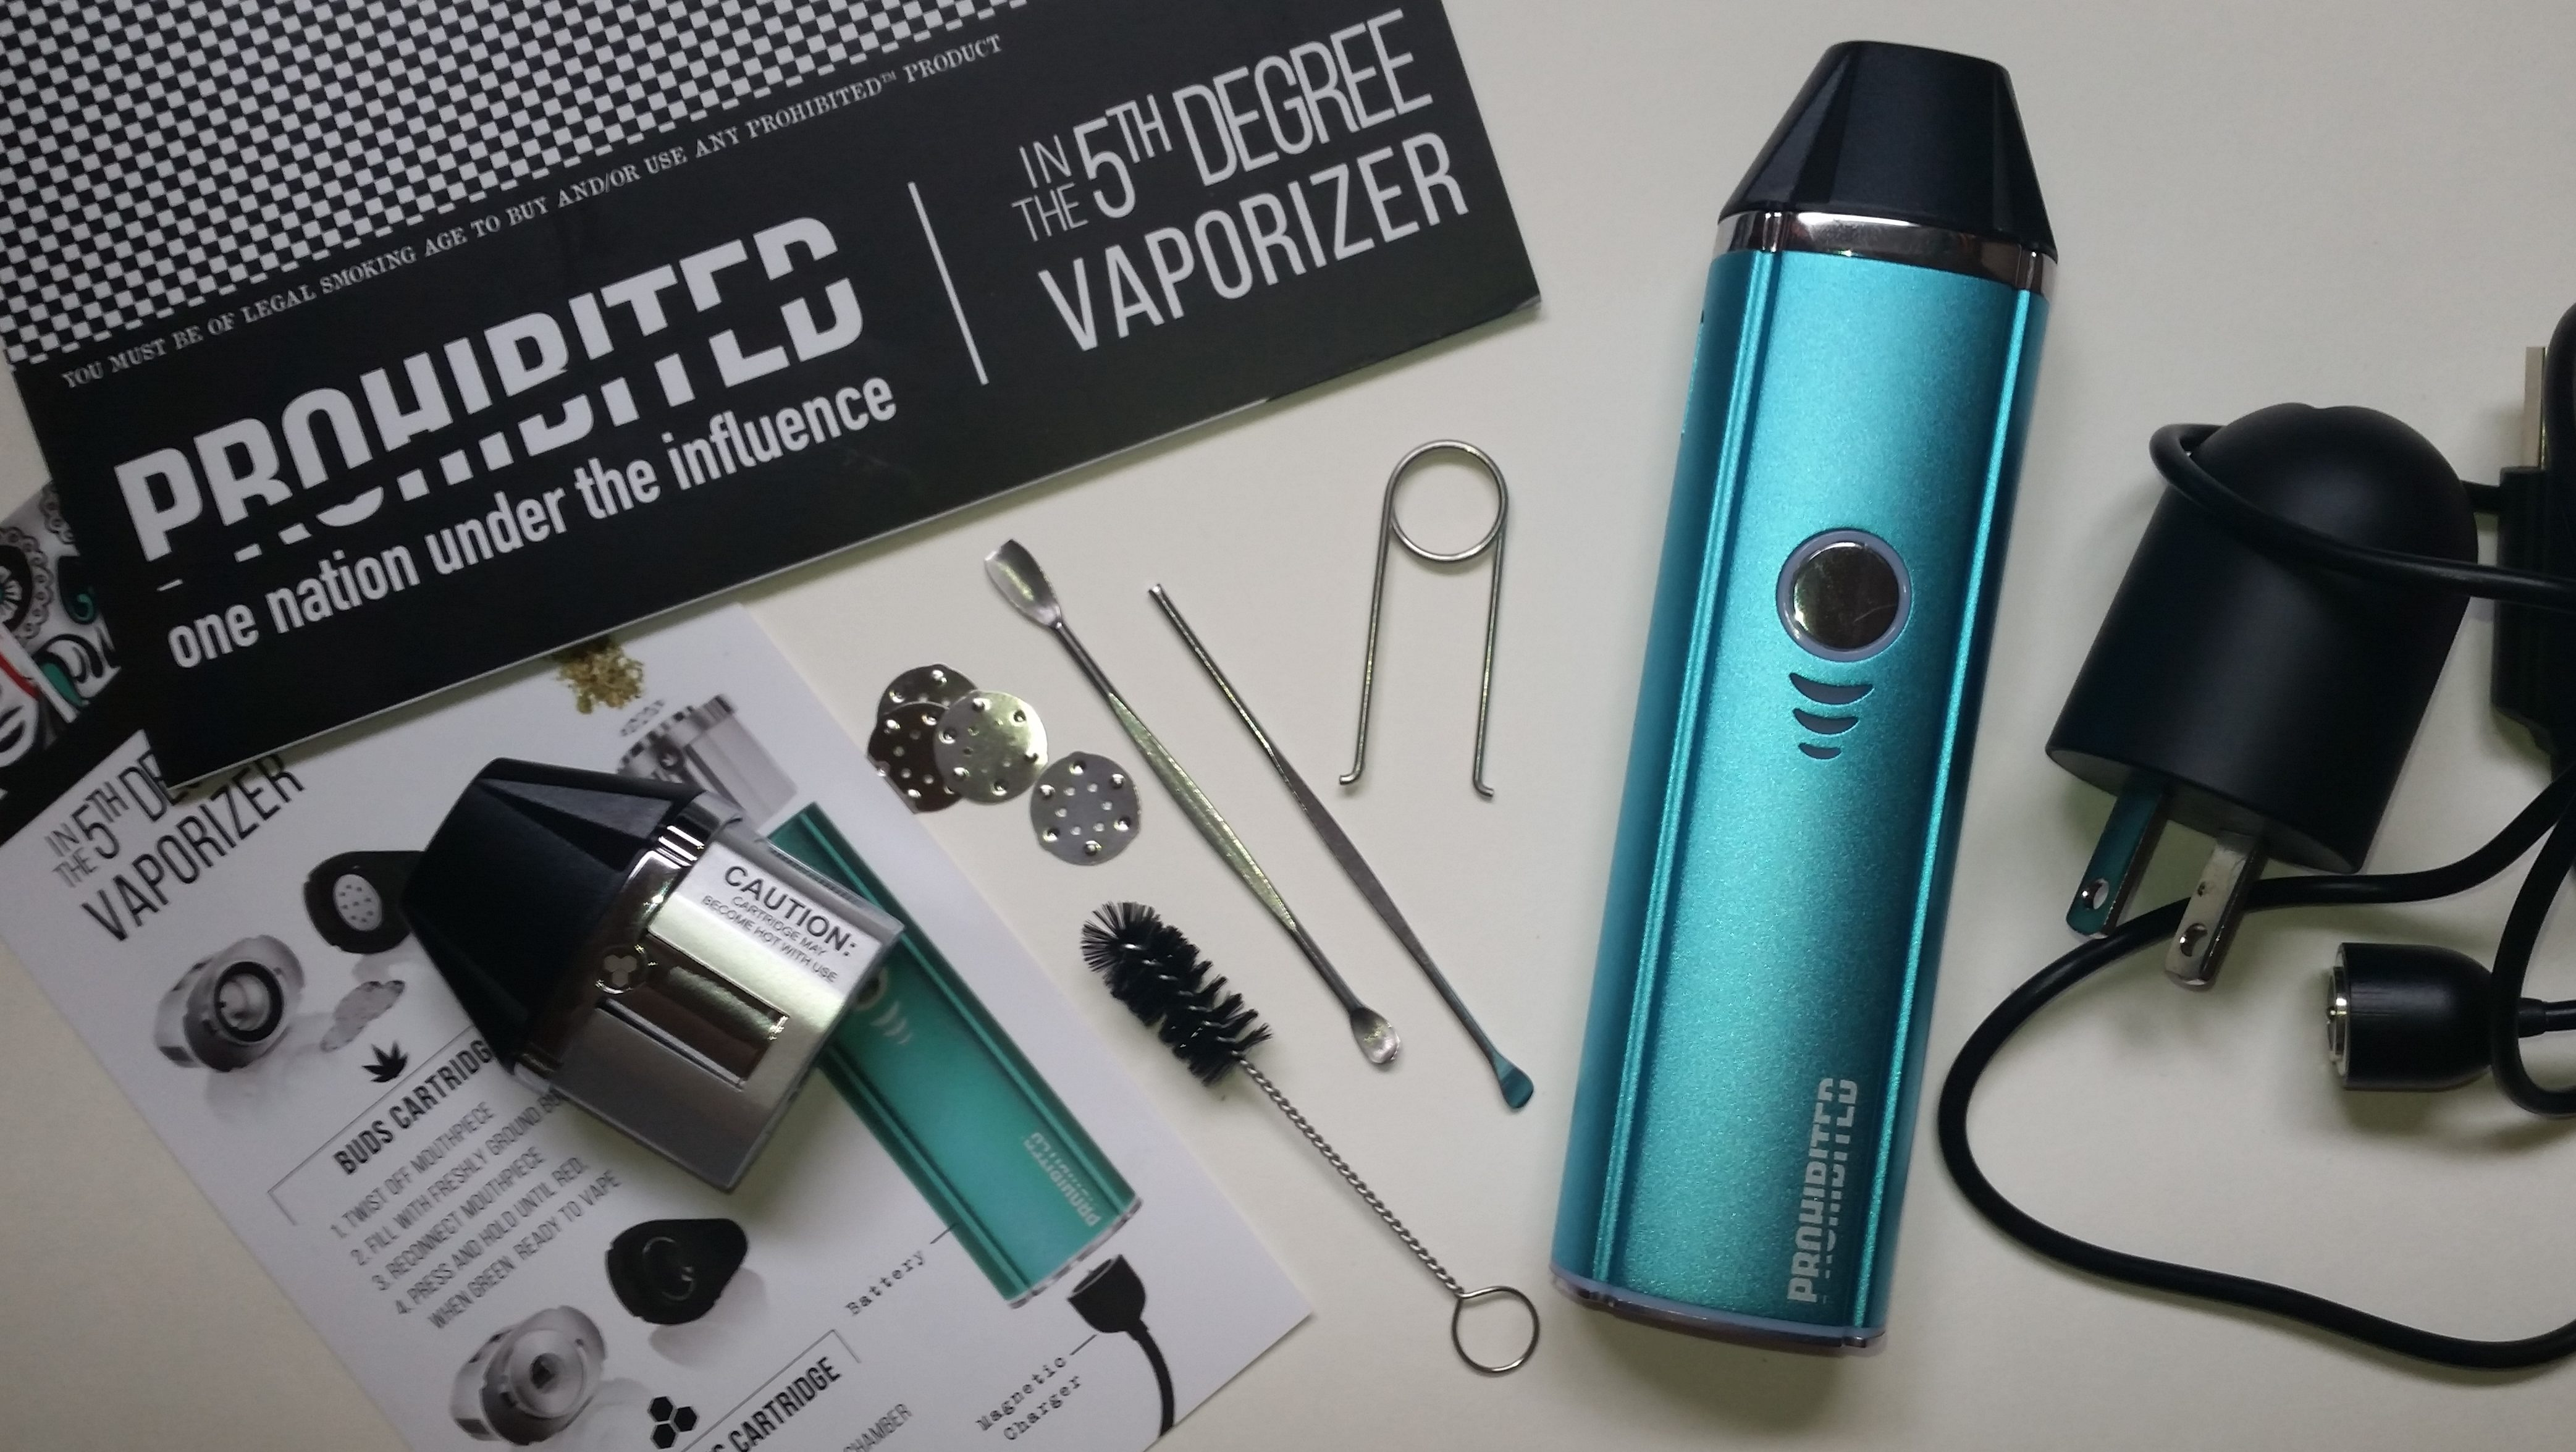 Check out the Prohibited in the 5th Degree direct from Prohibited Vaporizers!